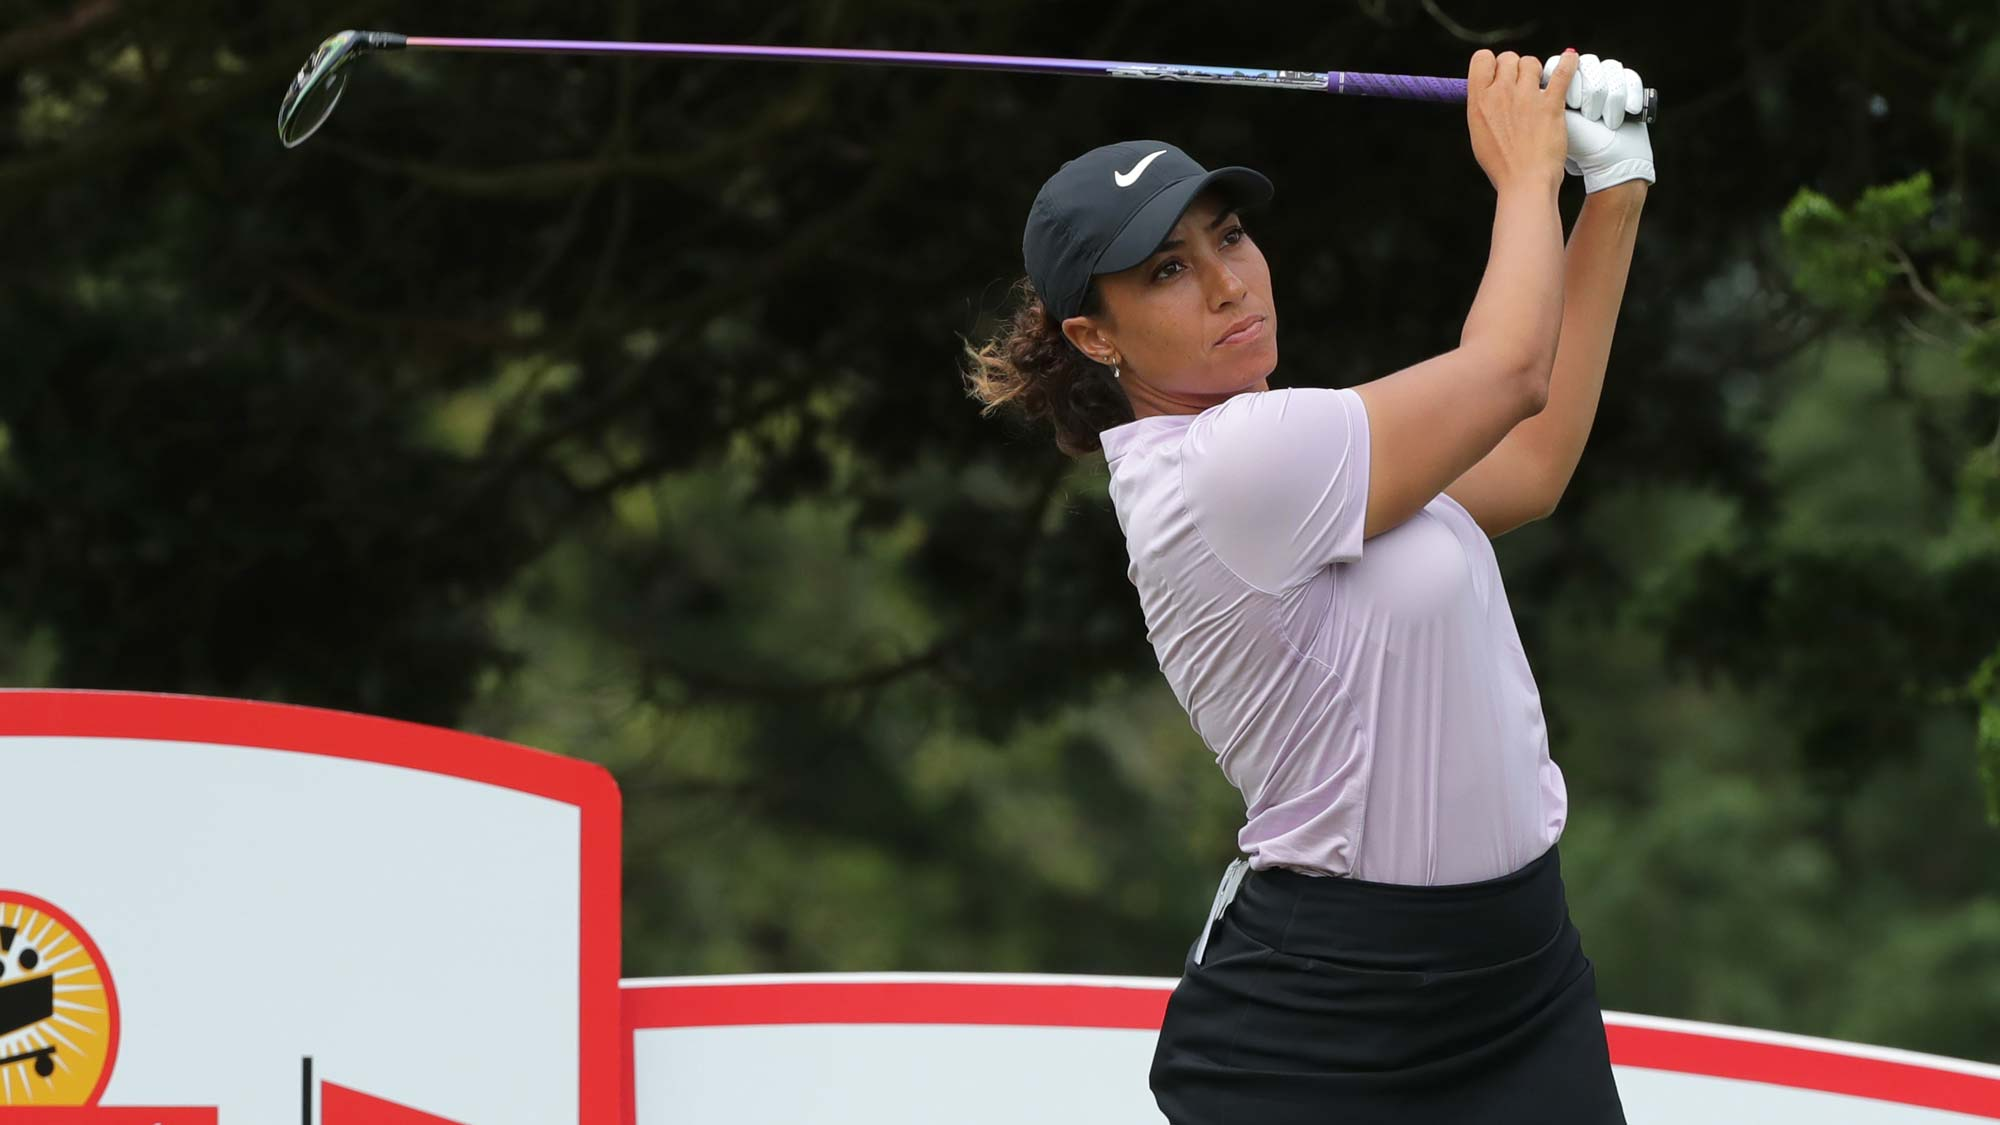 Cheyenne Woods hits her tee shot on the eighth hole during the first round of the ShopRite LPGA Classic presented by Acer